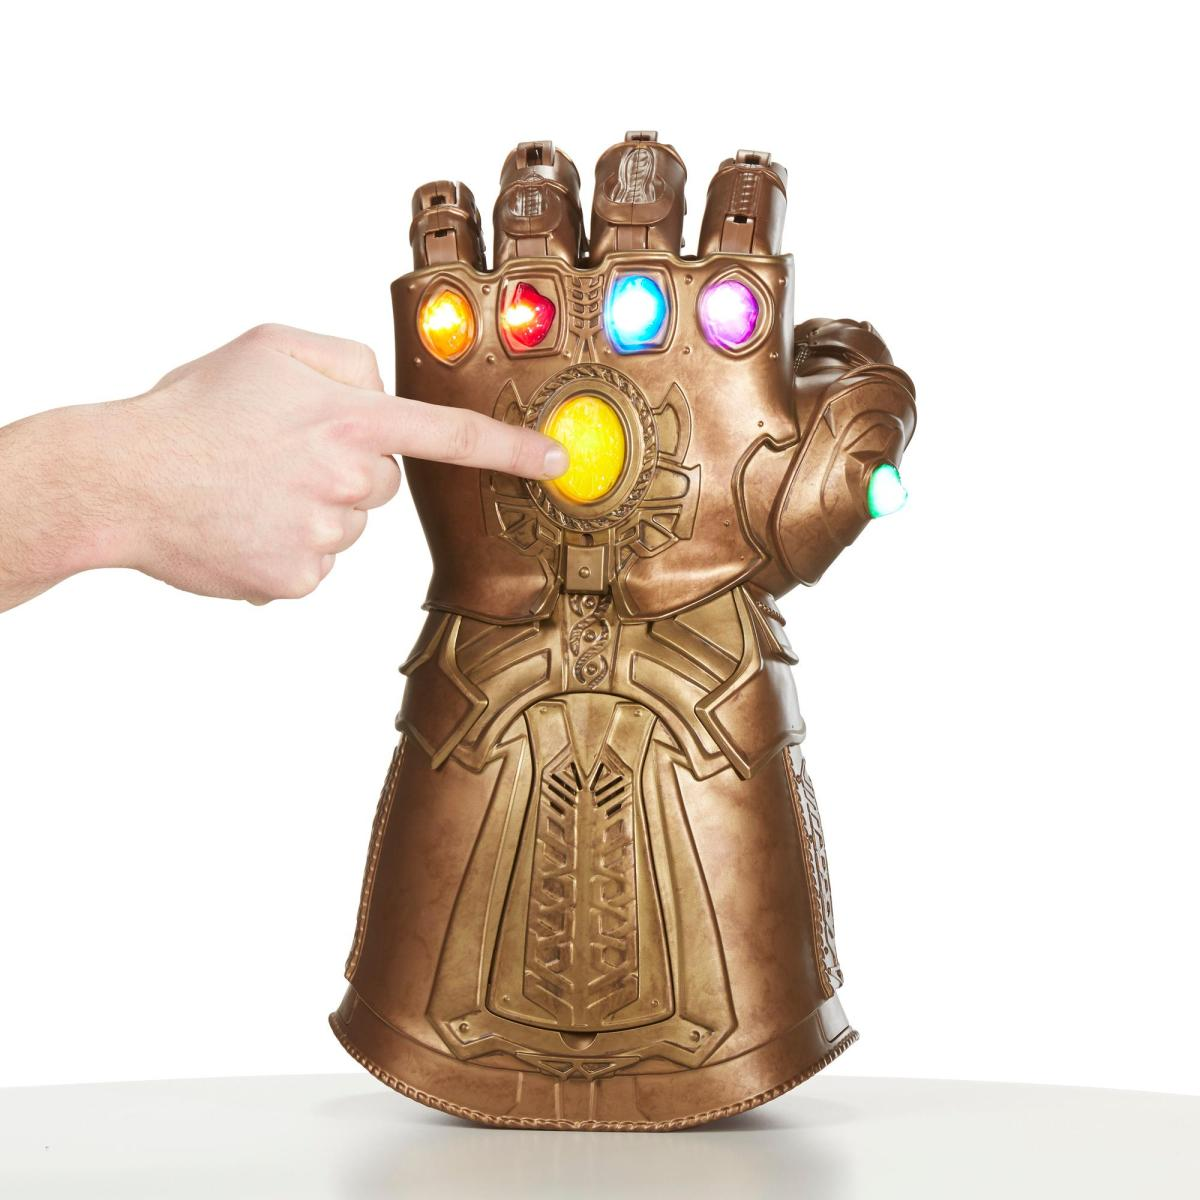 Hasbro's Avengers Infinity Gauntlet Has Us Geeking Out